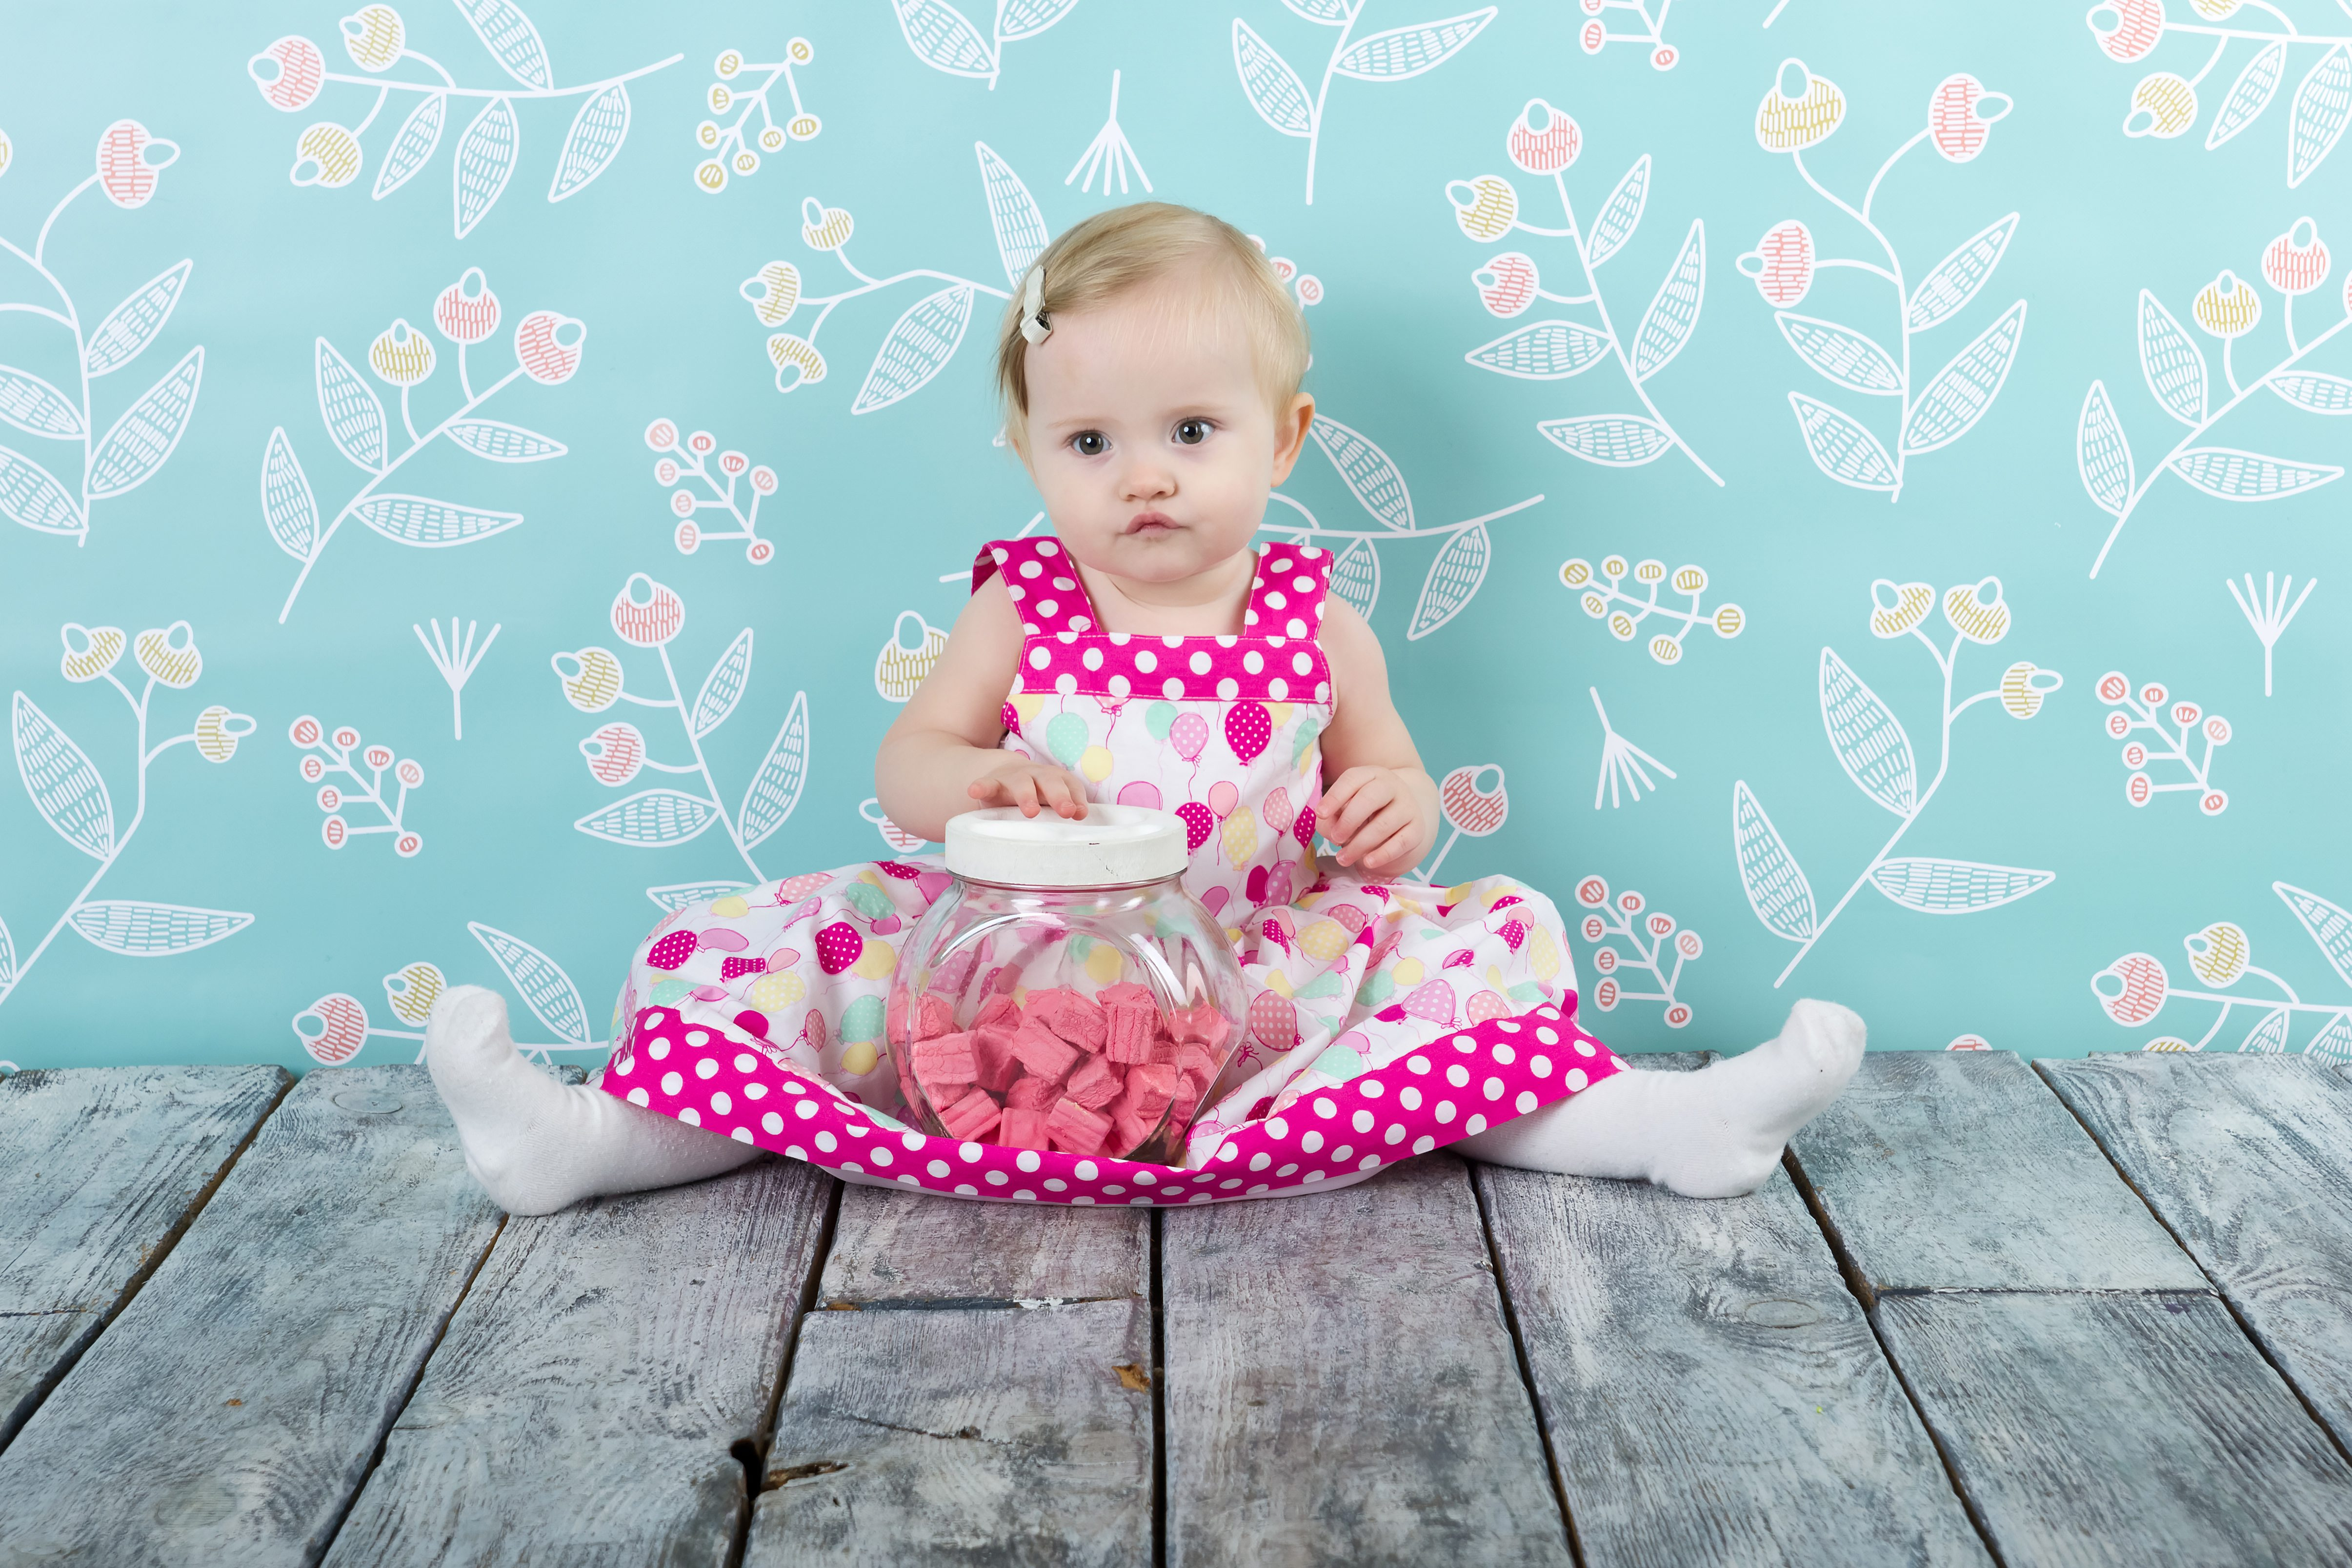 Girl in pink dress sitting on the wooden floor with candy jar on blue flower background holding a toy.; Shutterstock ID 234210592; Title: meisjesnamen uit natuur